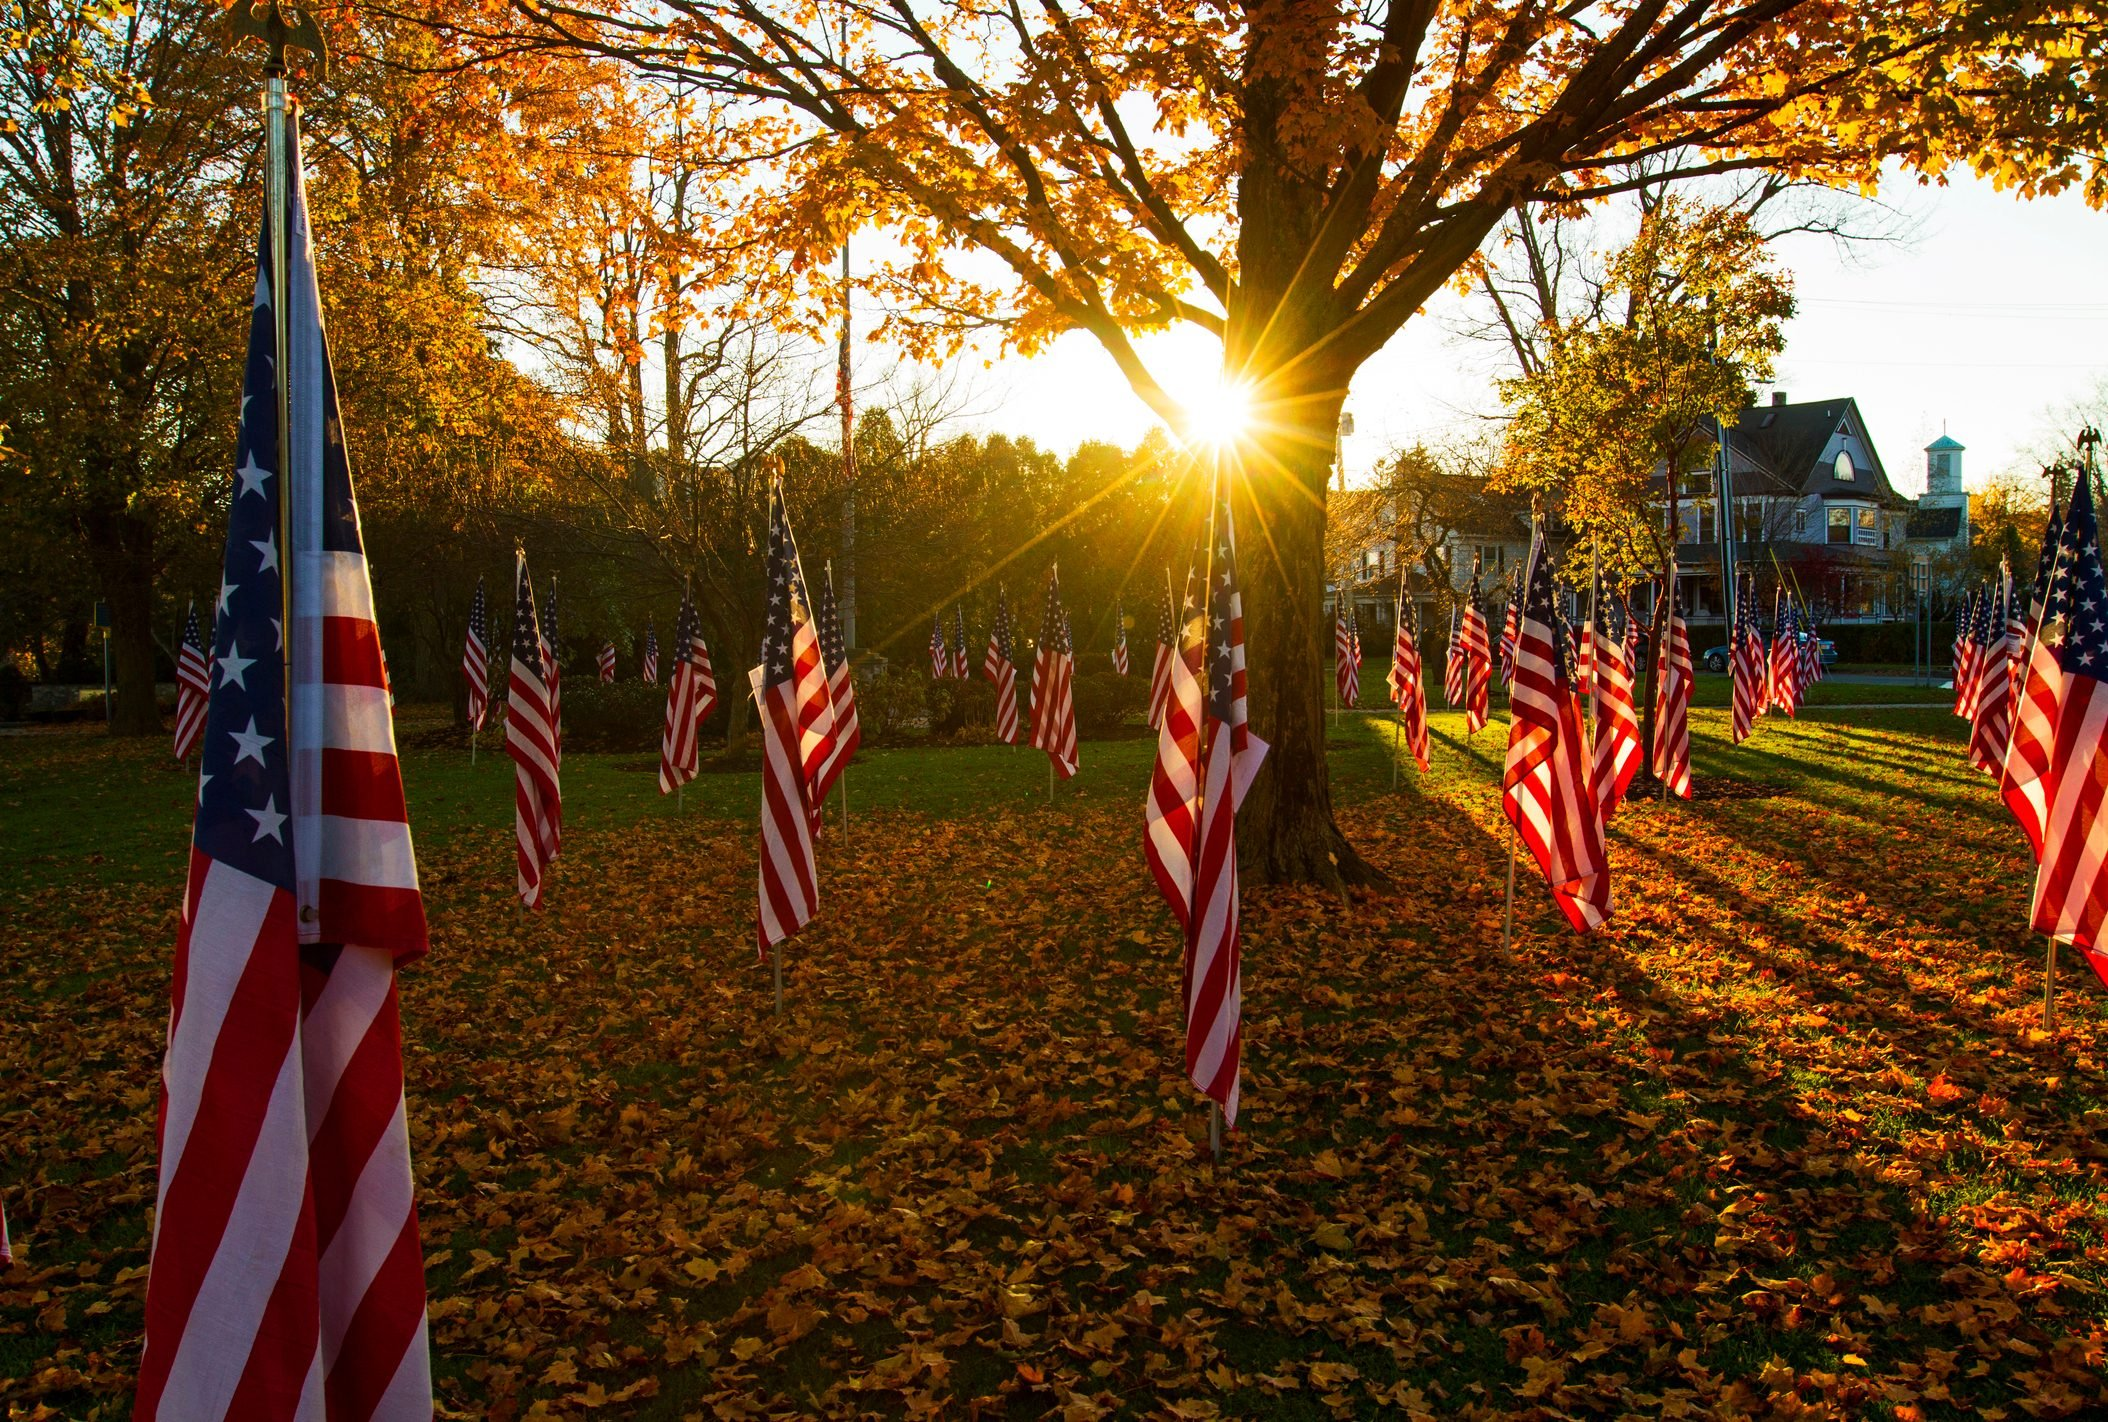 American flags sit in the autumn setting sun in a public park in a village in upstate New York